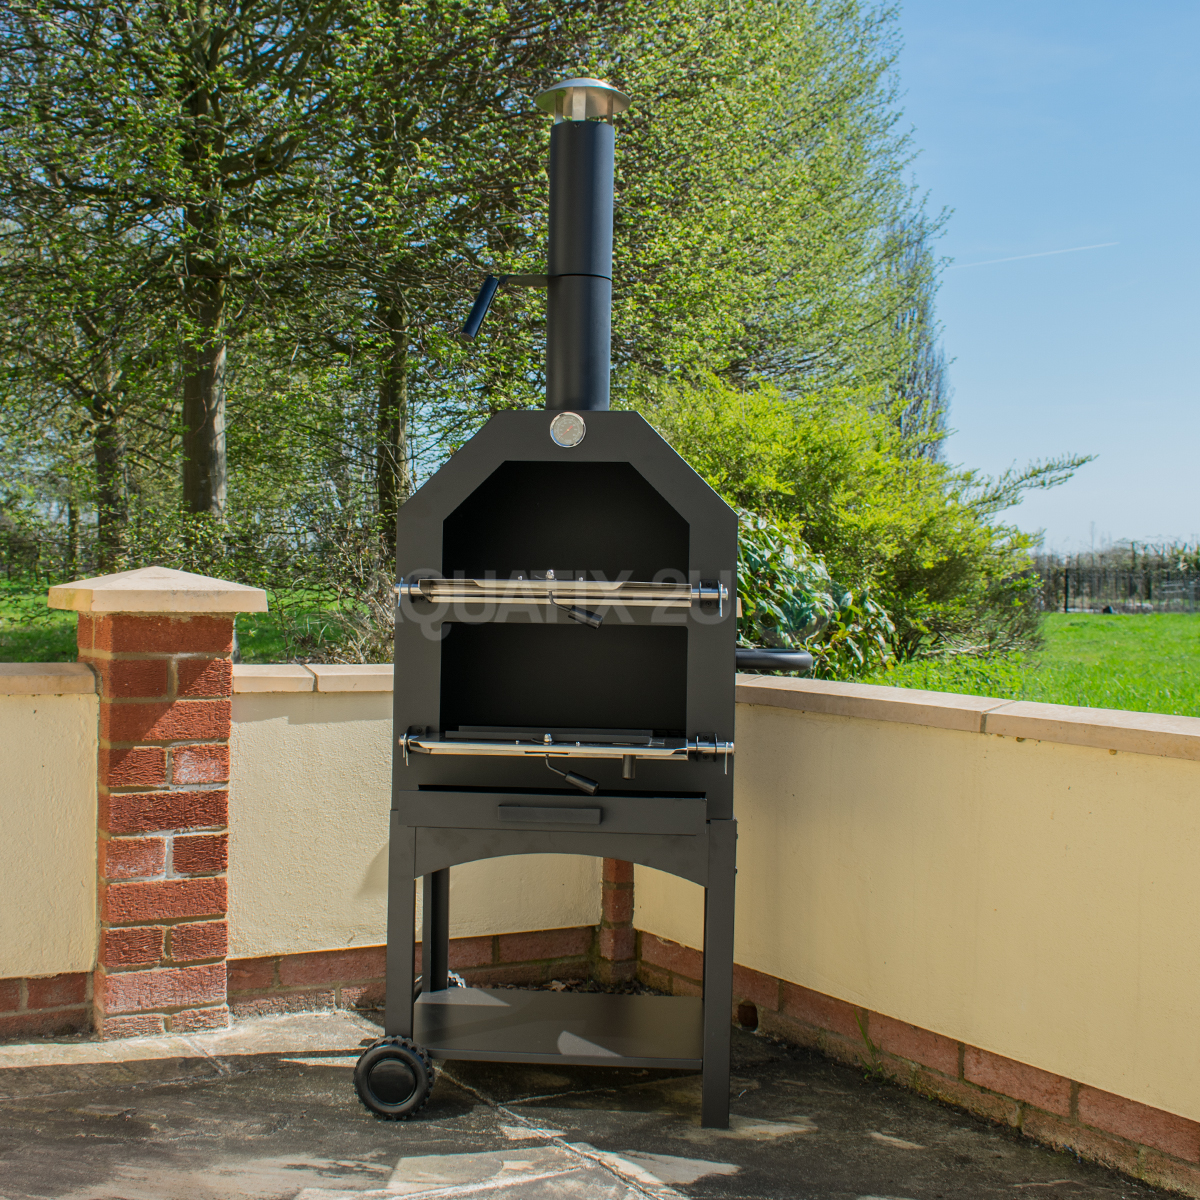 OUTDOOR PIZZA OVEN STEEL BBQ SMOKER CHARCOAL WOOD FIRED